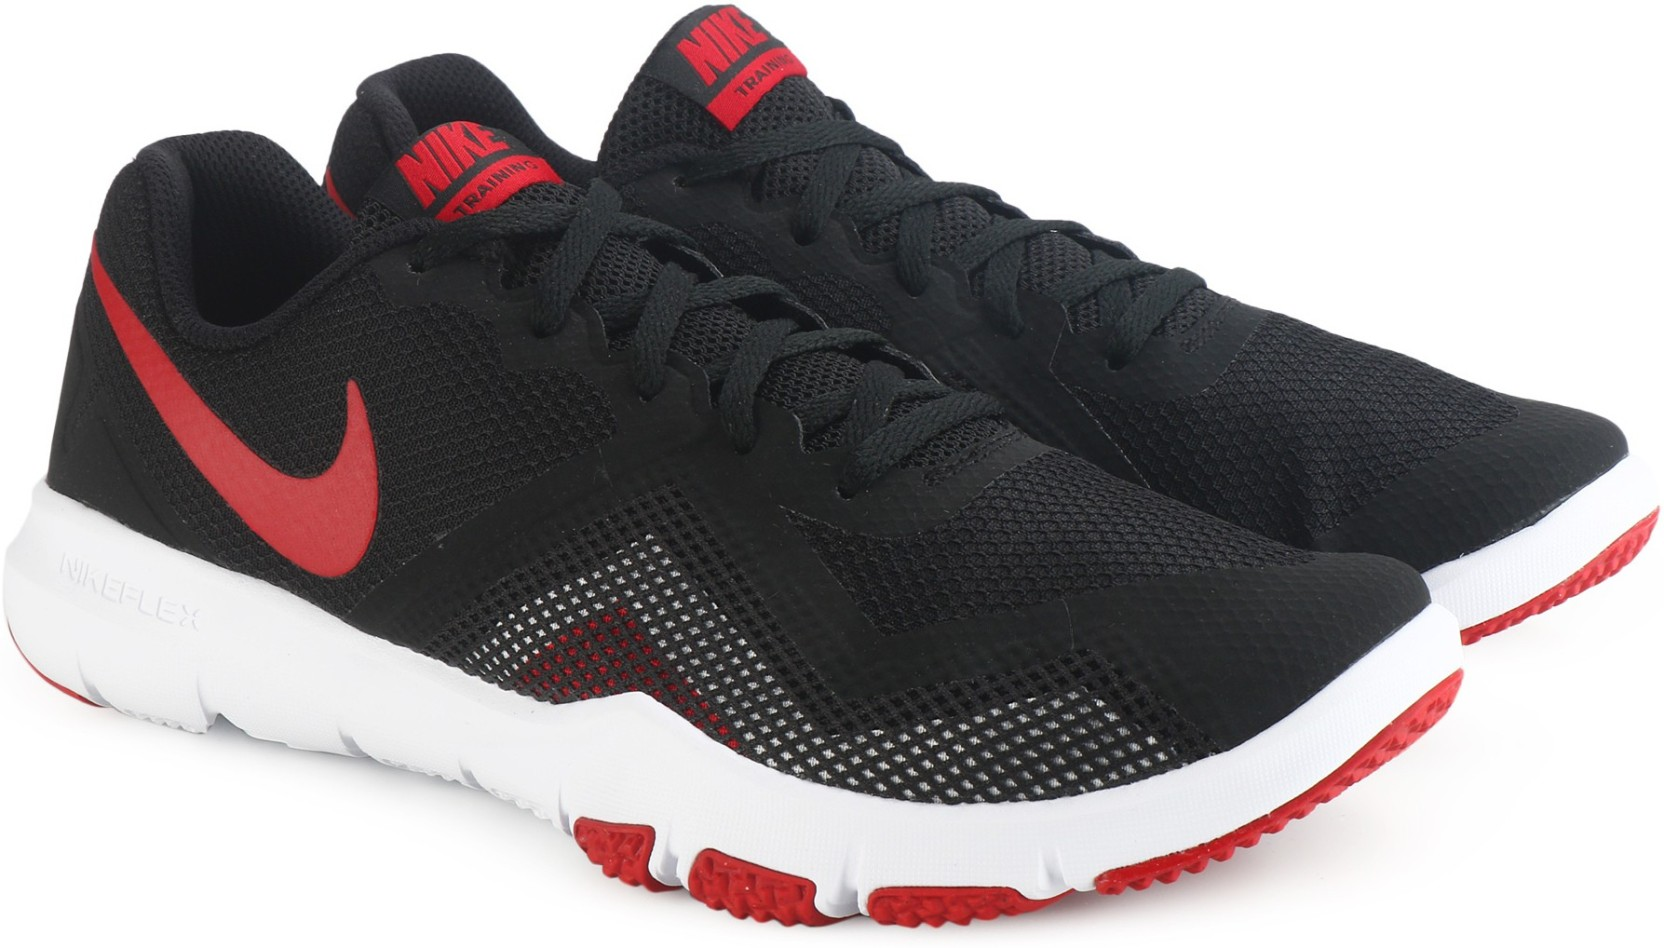 Nike Flex Control Ii Training Shoes For Men Buy Black Gym Red Add To Cart 9d6e4a5cc